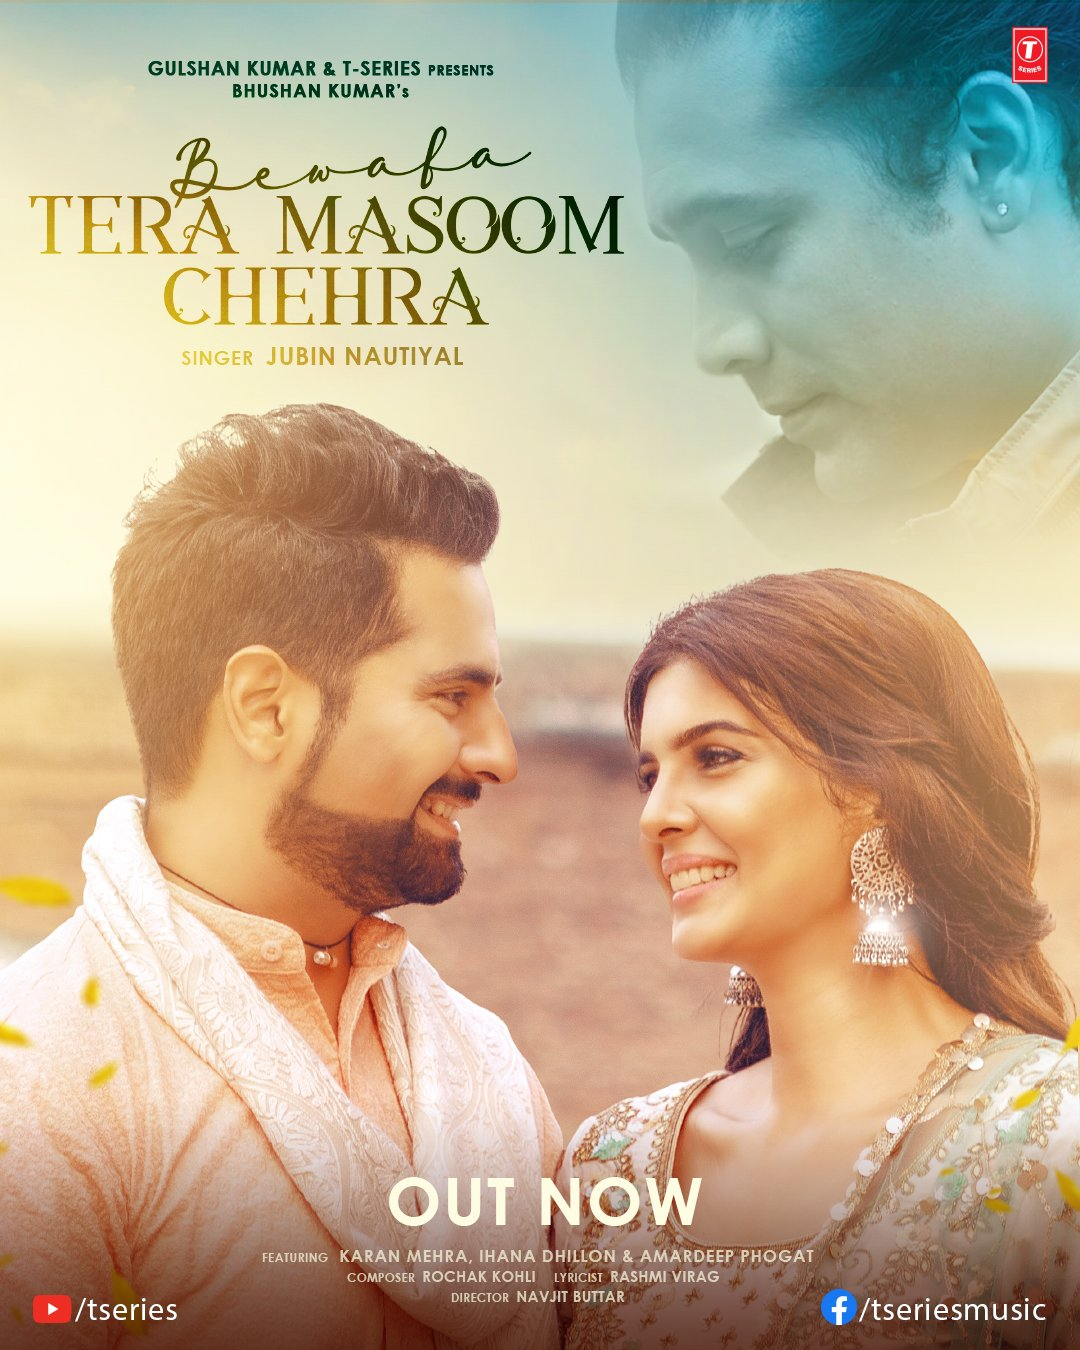 Bewafa Tera Masoom Chehra By Jubin Nautiyal 2020 Hindi Music Video 1080p HDRip Download